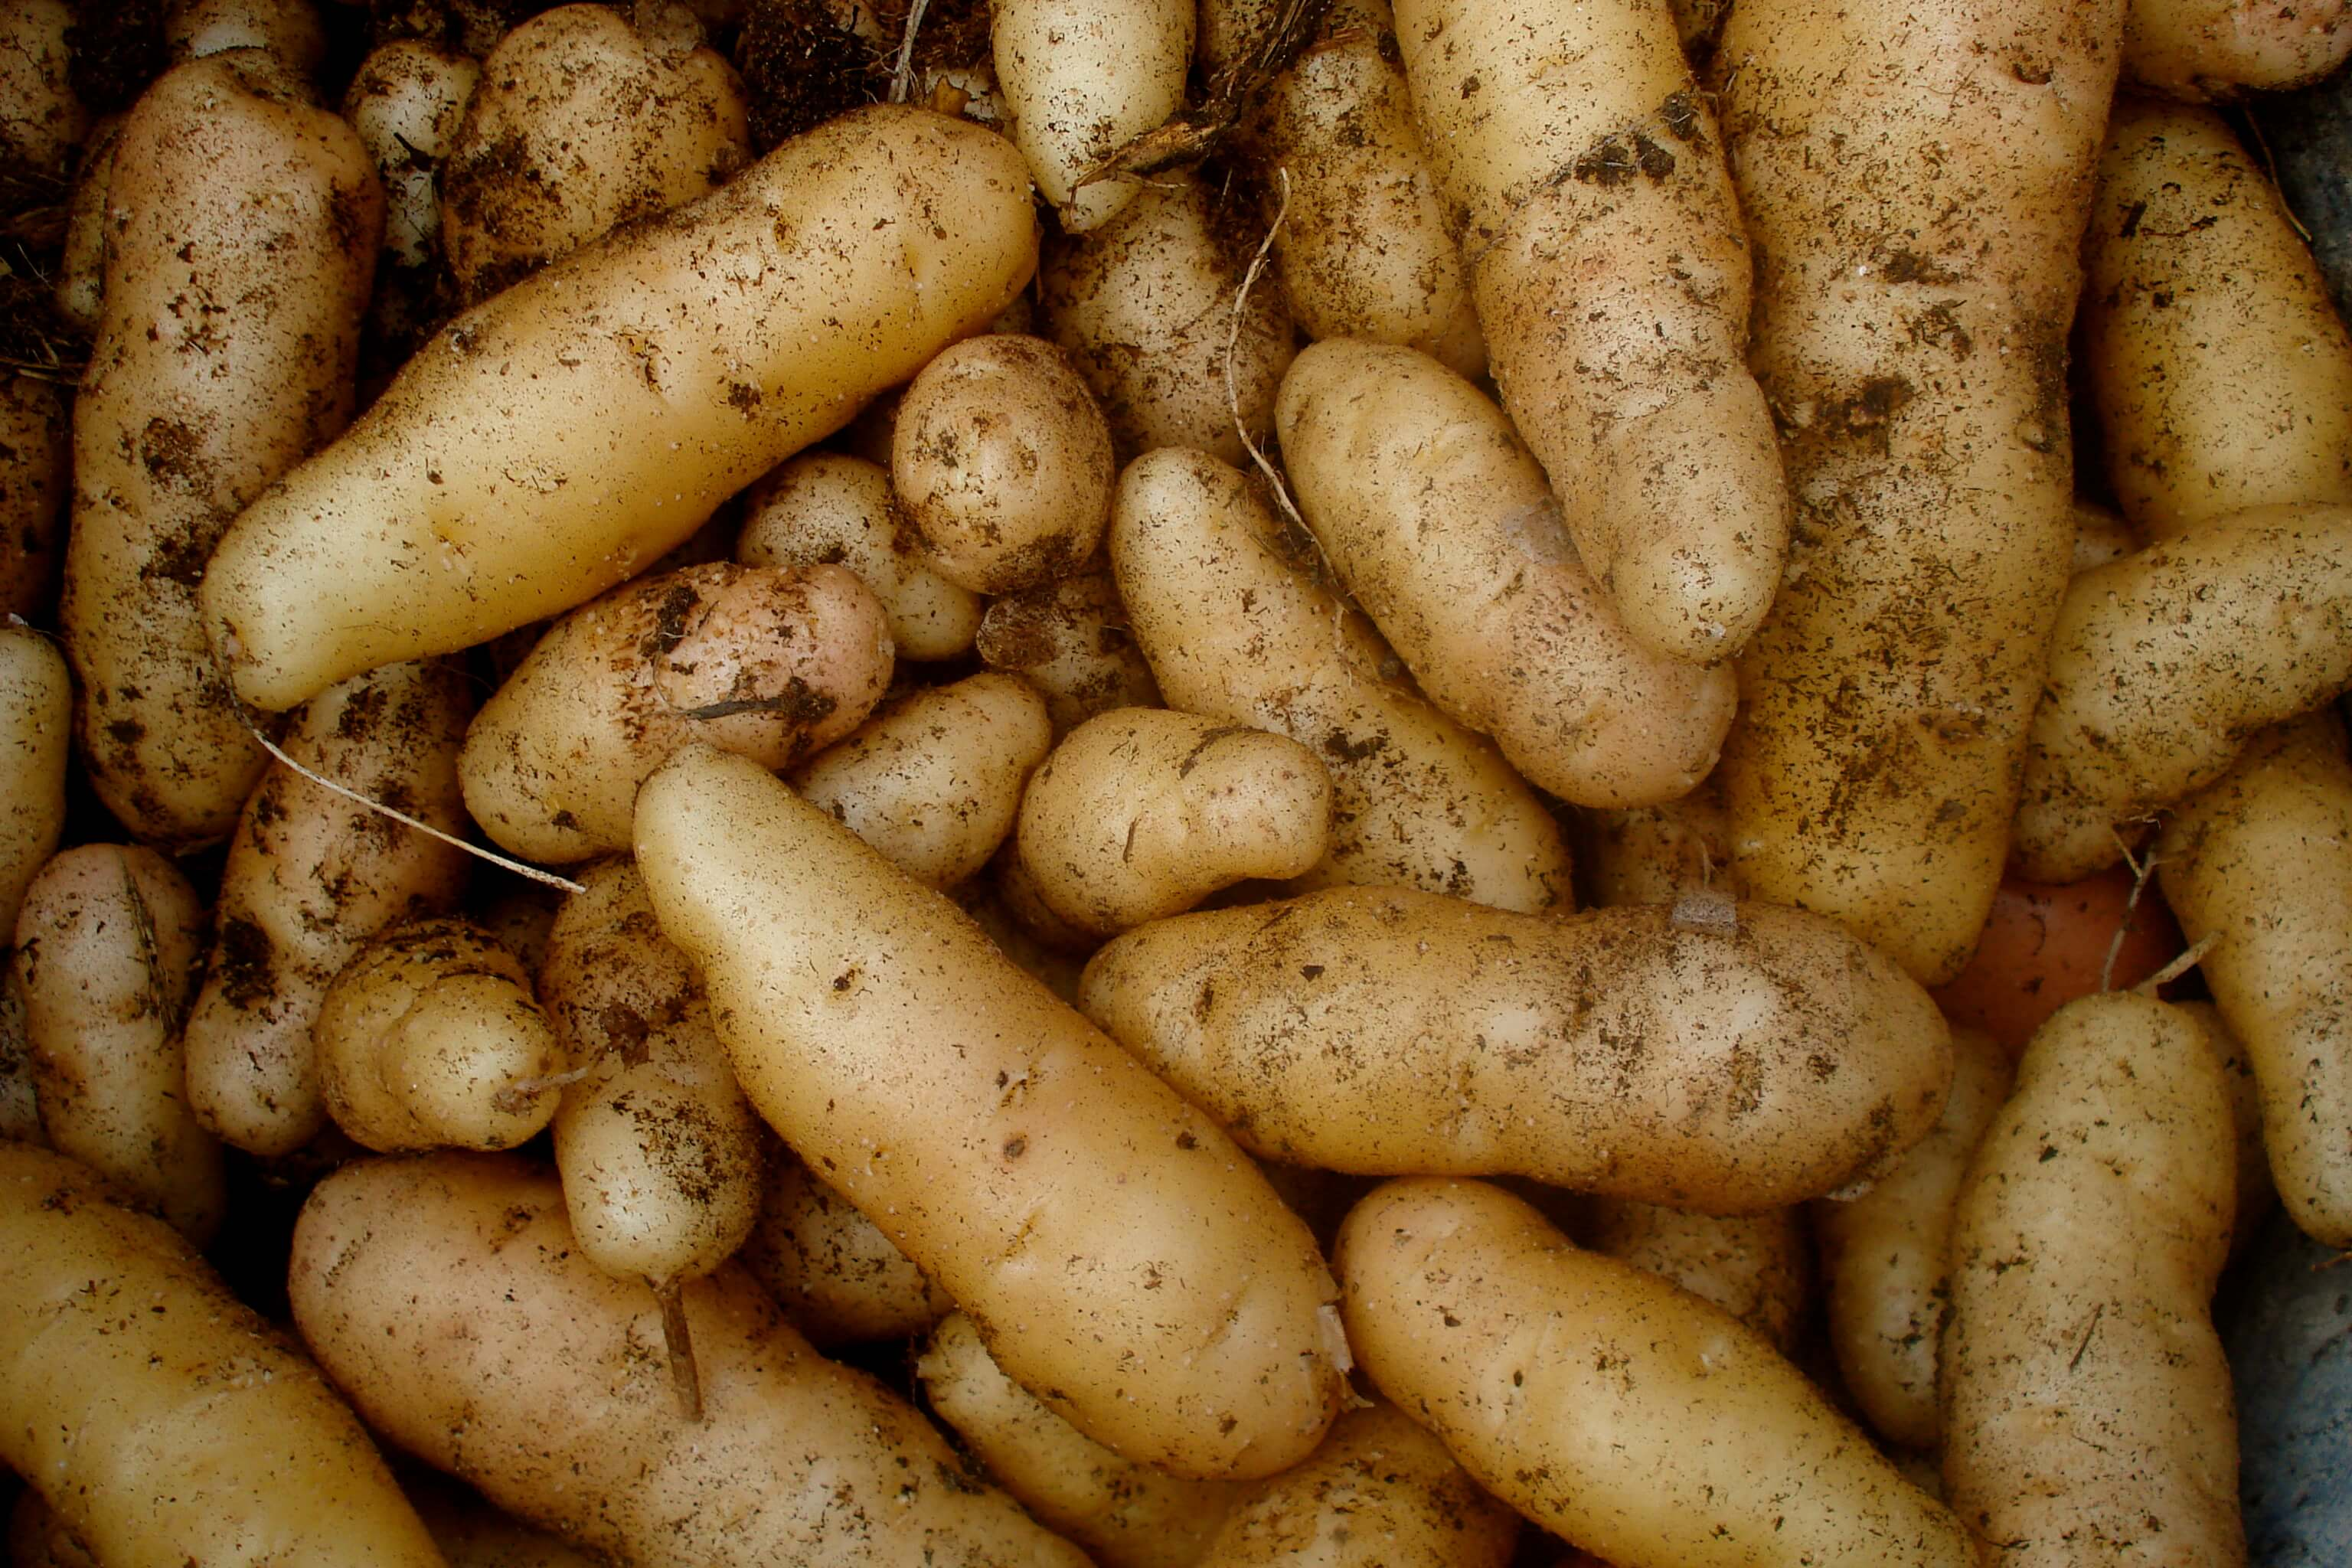 Go to How to Grow Potatoes for a Bounteous Harvest